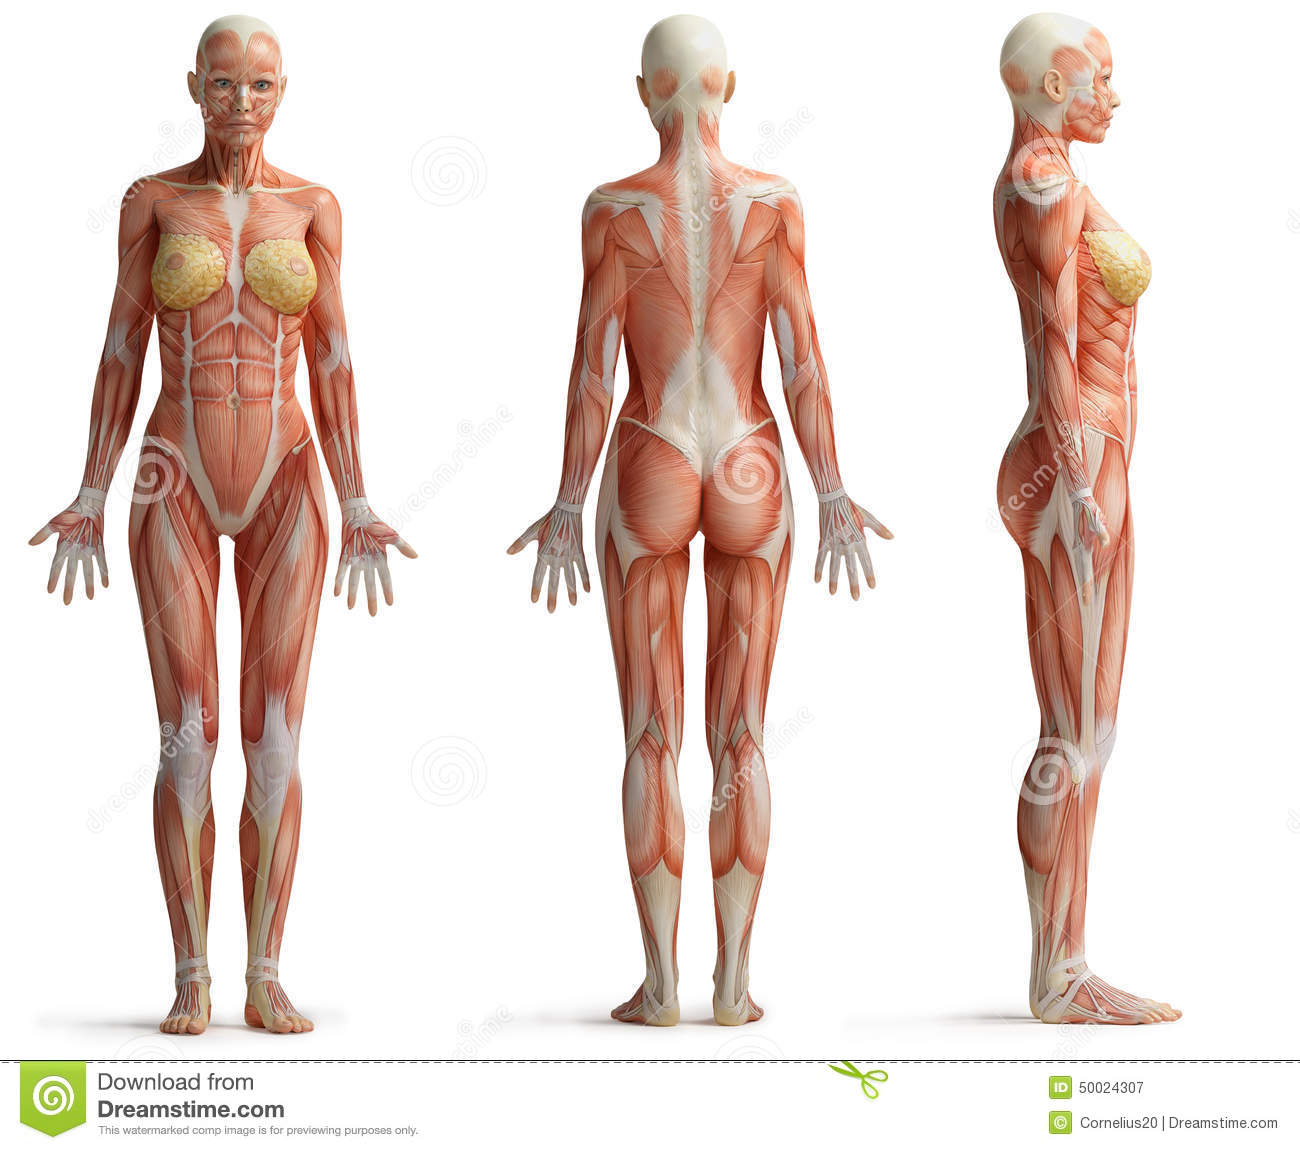 Female Anatomy Stock Illustration Illustration Of Muscles 50024307